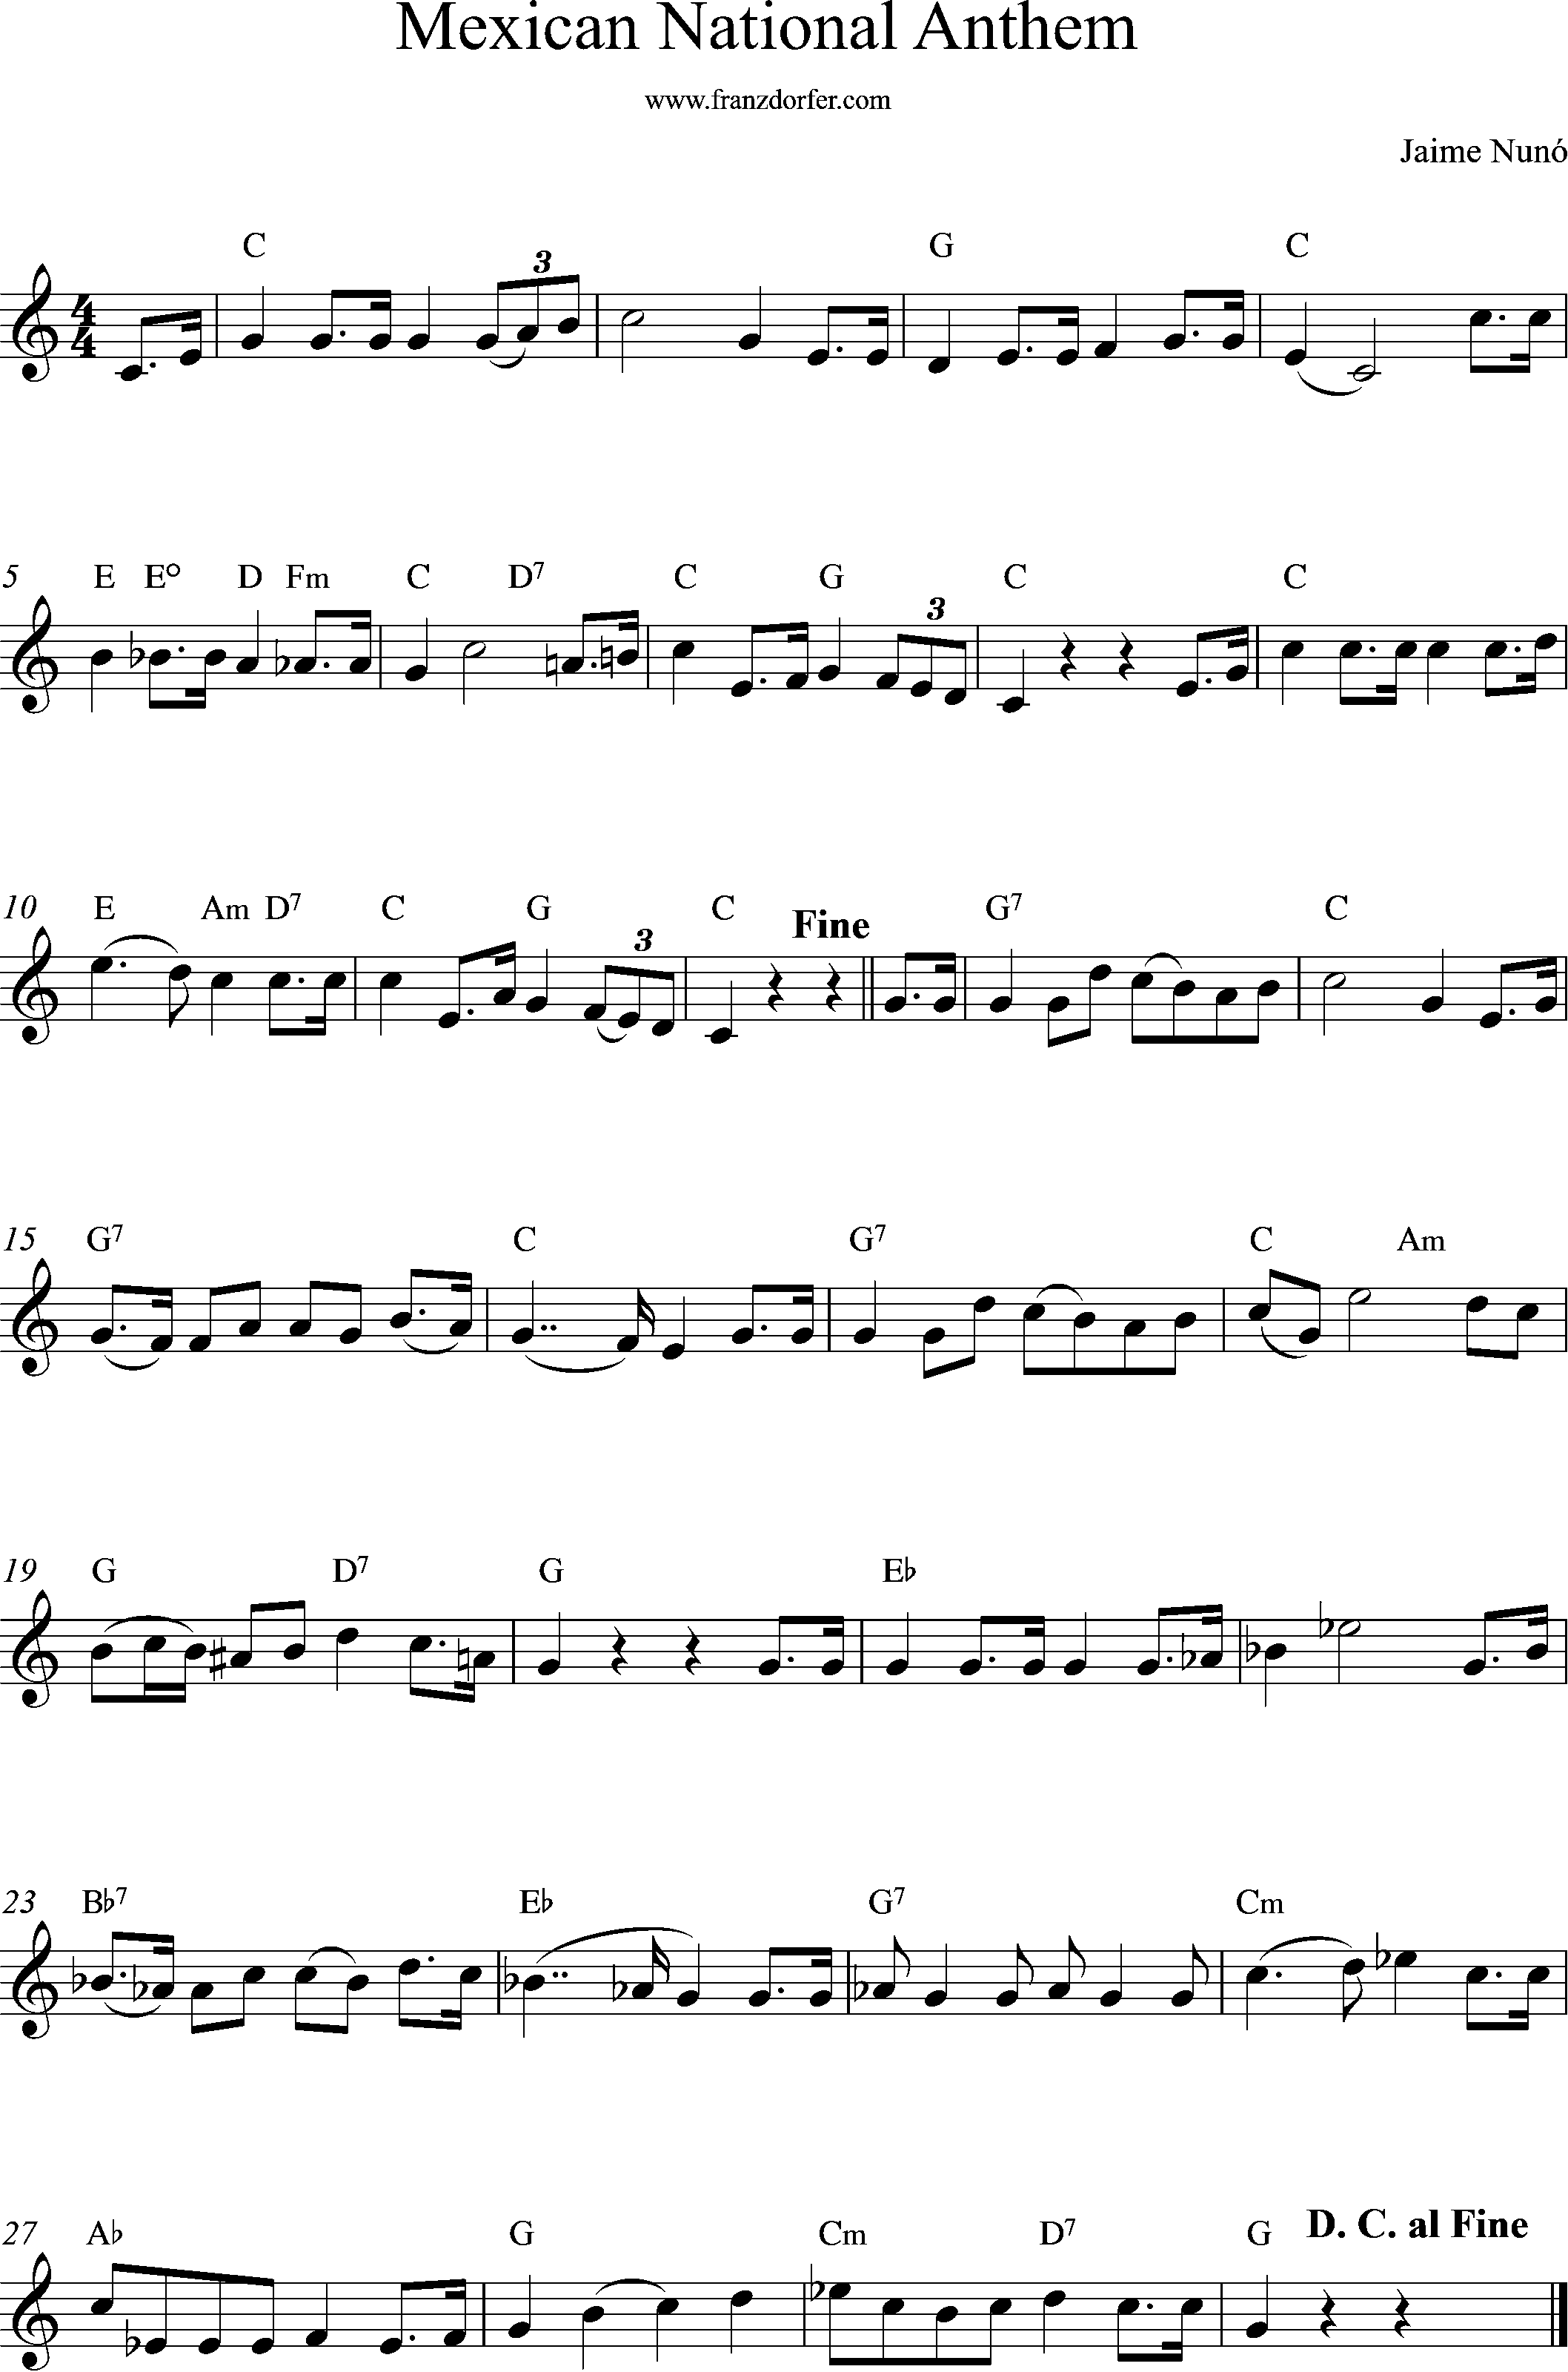 Sheetmusic Mexican National Anthem, C-Major